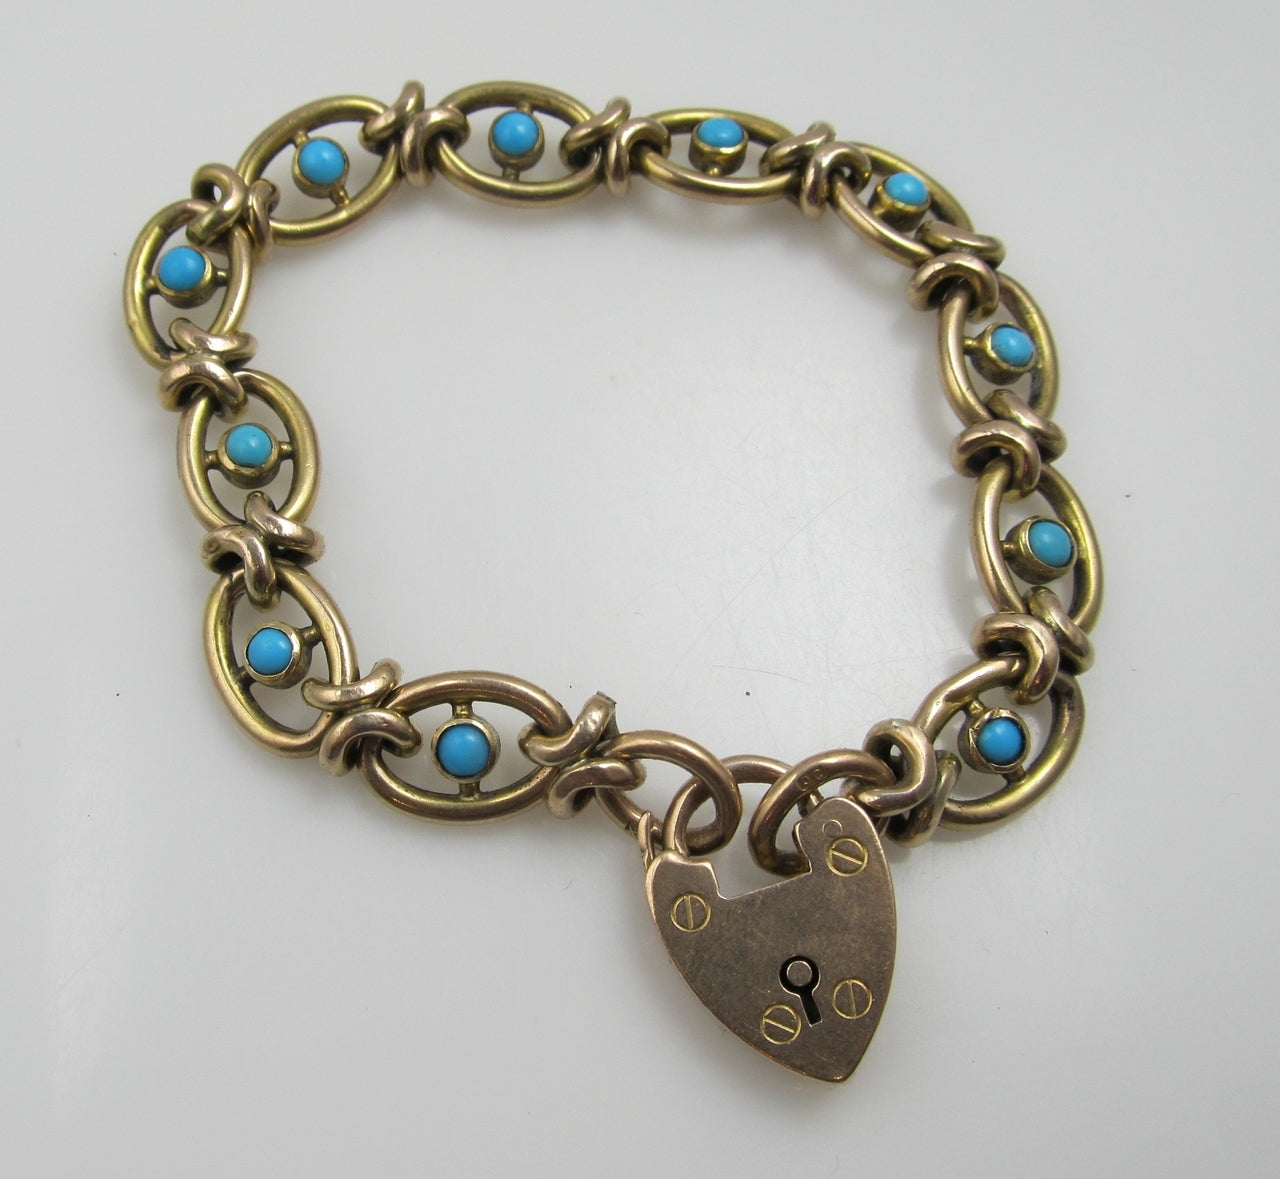 Antique natural turquoise padlock bracelet, 9kt yellow gold